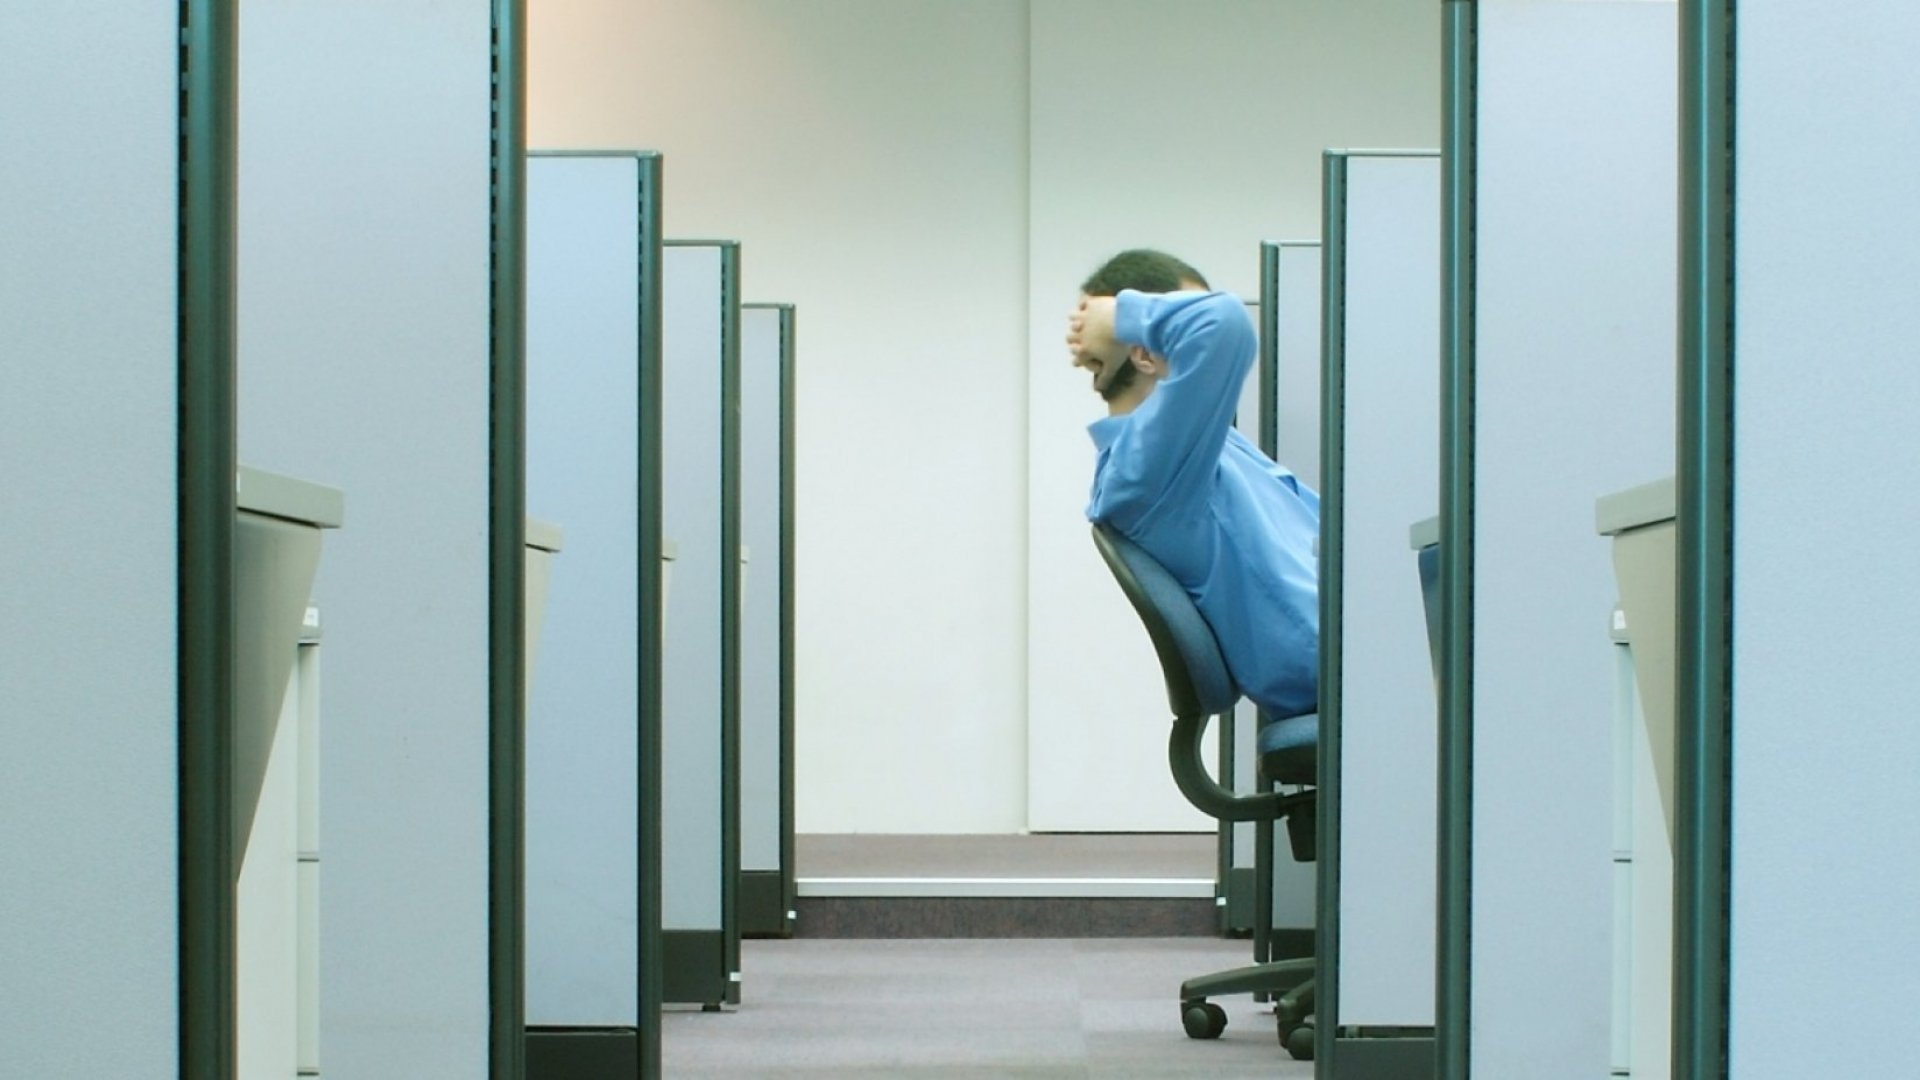 The No. 1 Reason Your Employees Are Lacking Motivation Boils Down to 4 Words